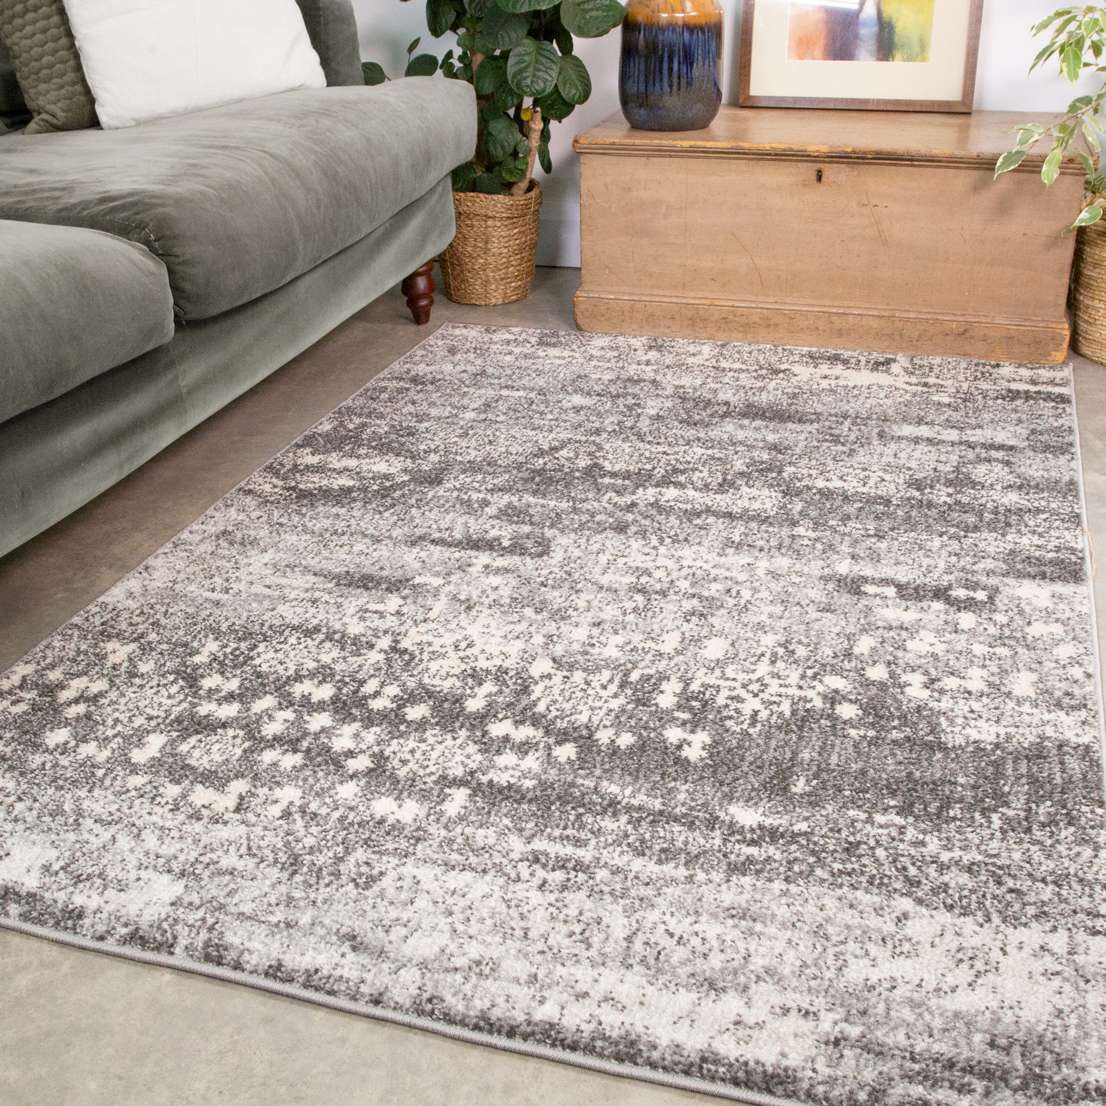 Grey Distressed Pattern Living Room Rug, Rugs For Living Room